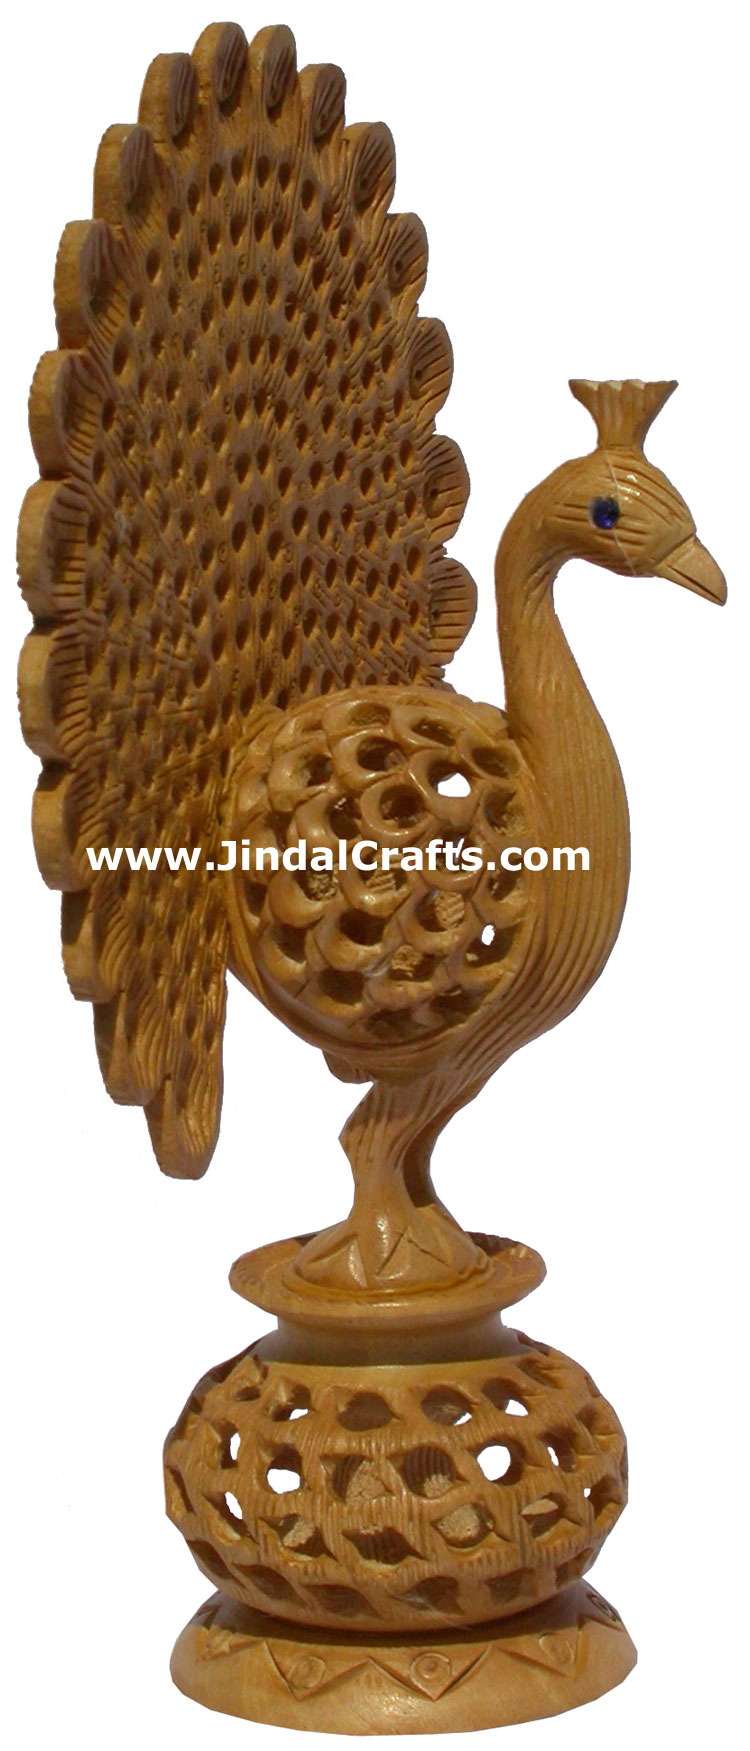 Hand Carved Wooden Sculpture Dancing Hollow Peacock India Artifact Bird Statues